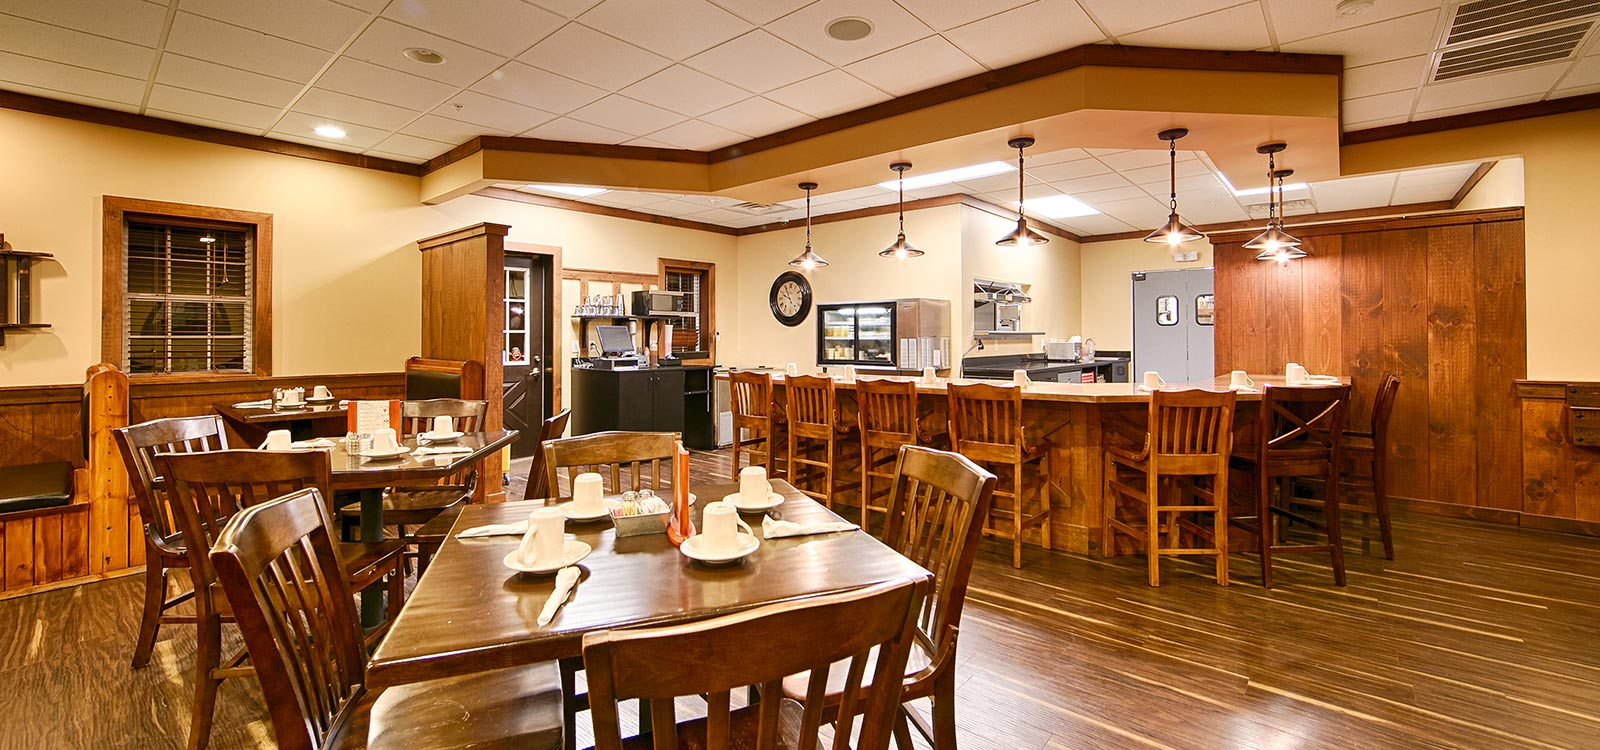 Dining Facility at Best Western Plus Intercourse Village Inn & Suites